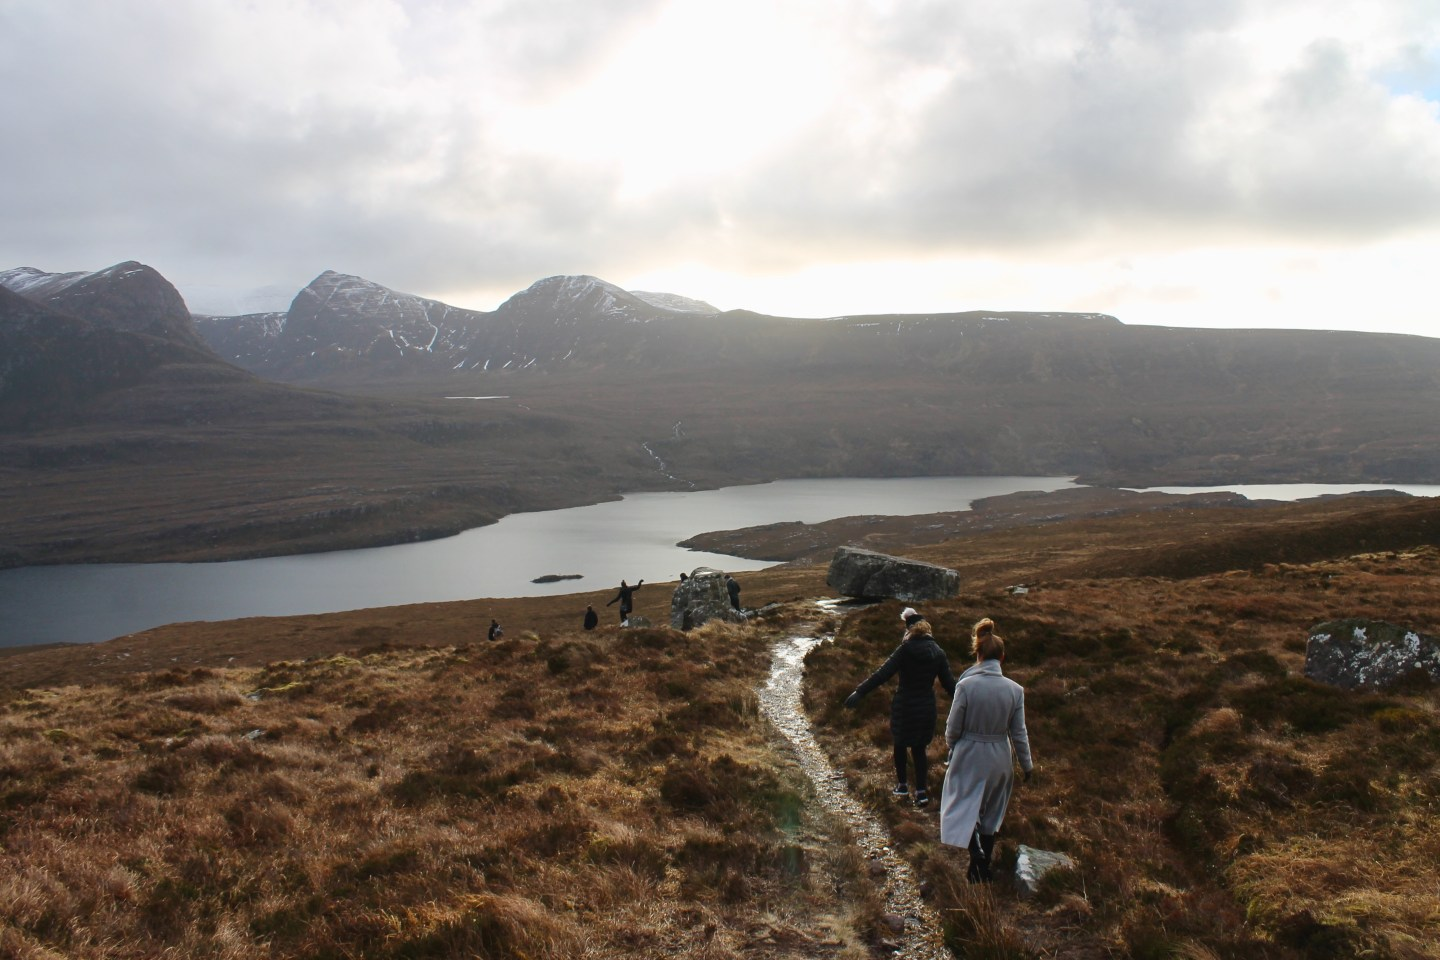 Scottish Highlands Adventure: The Caledonian Sleeper, Ullapool and Scaling Stac Pollaidh